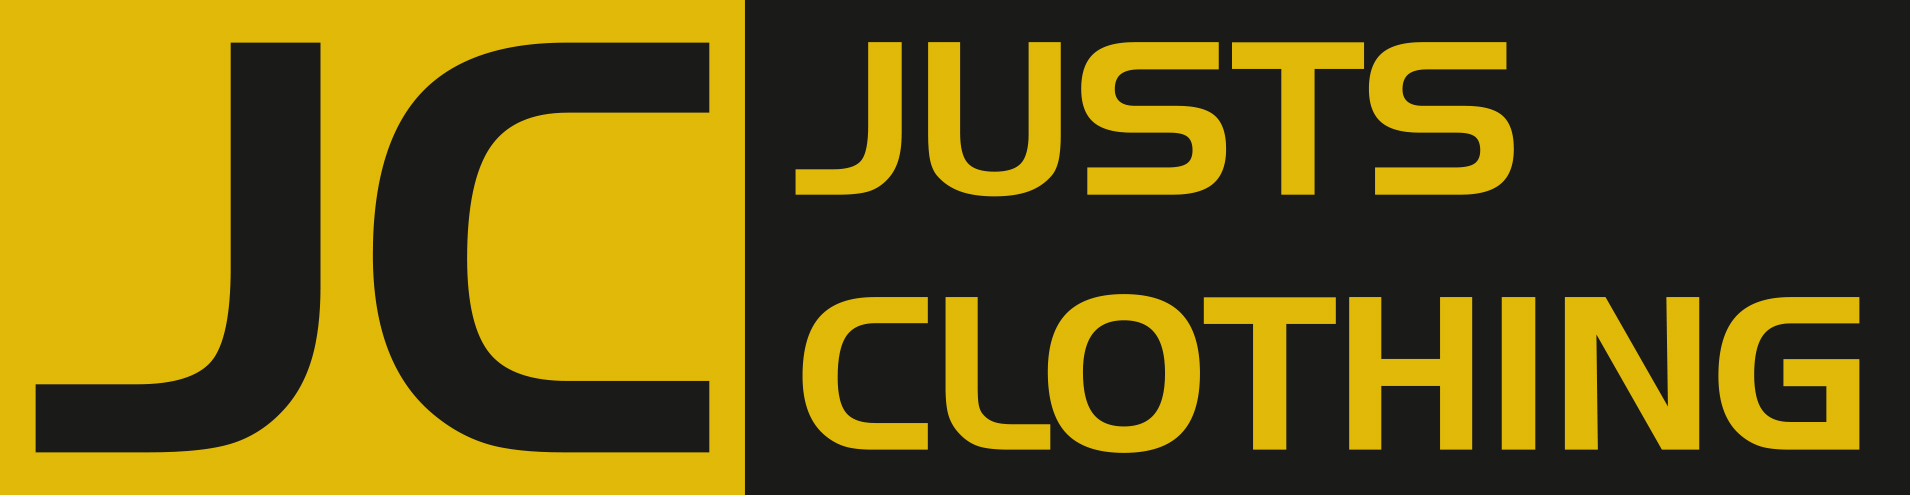 Justs_Clothing_Logo